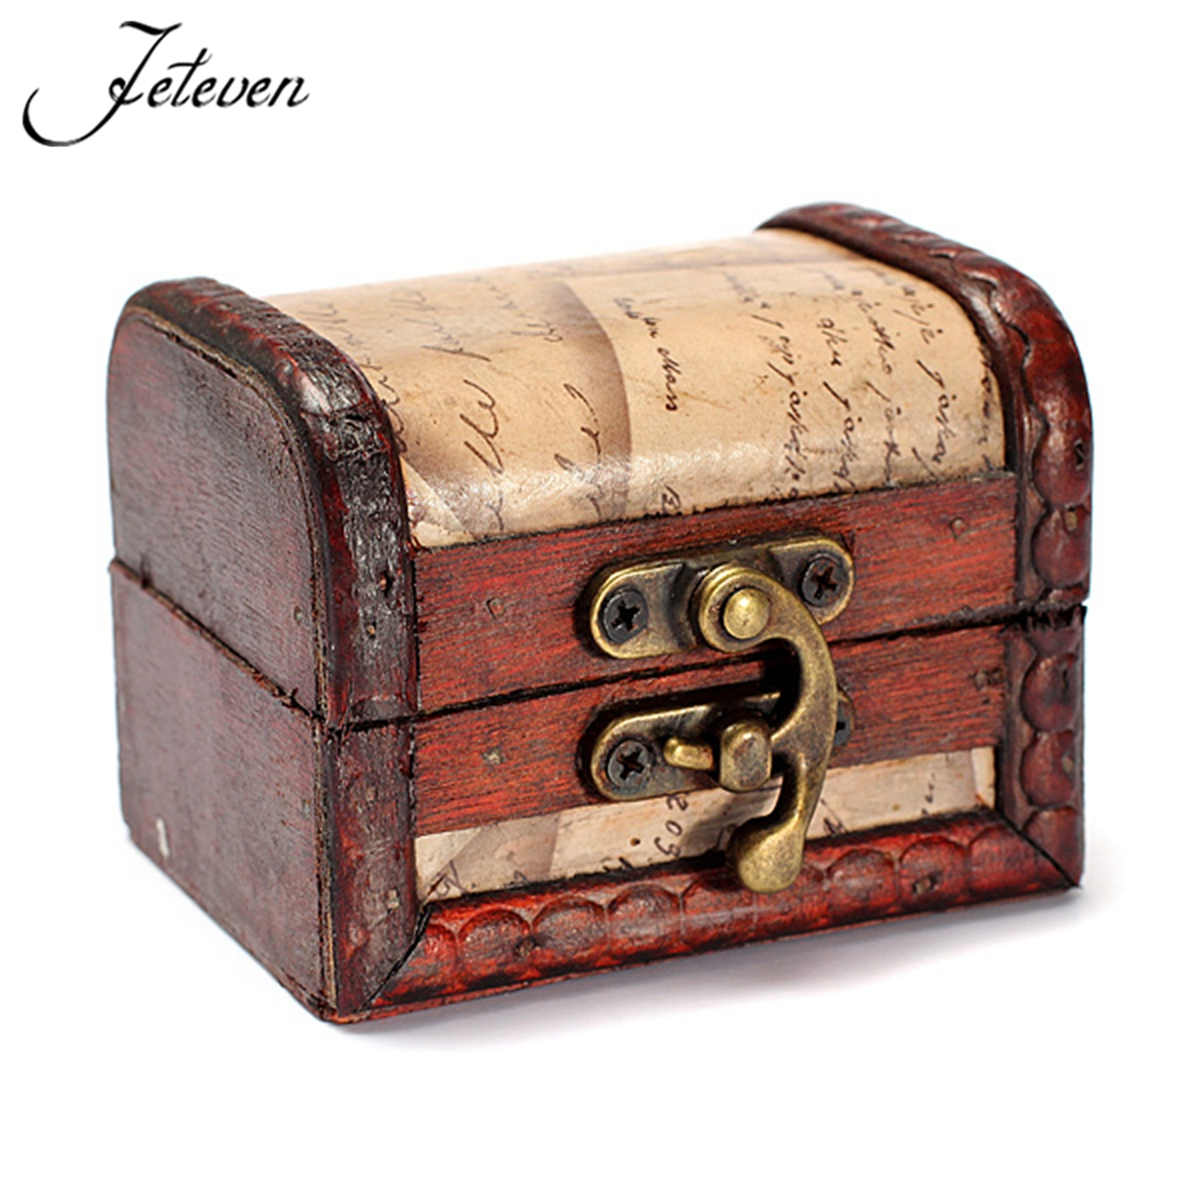 1pcs Vintage Stamp Small Metal Locking Wooden Box Treasure Chest Handmade Storage Cases Container For Gift Jewelry Organizer(China (Mainland))